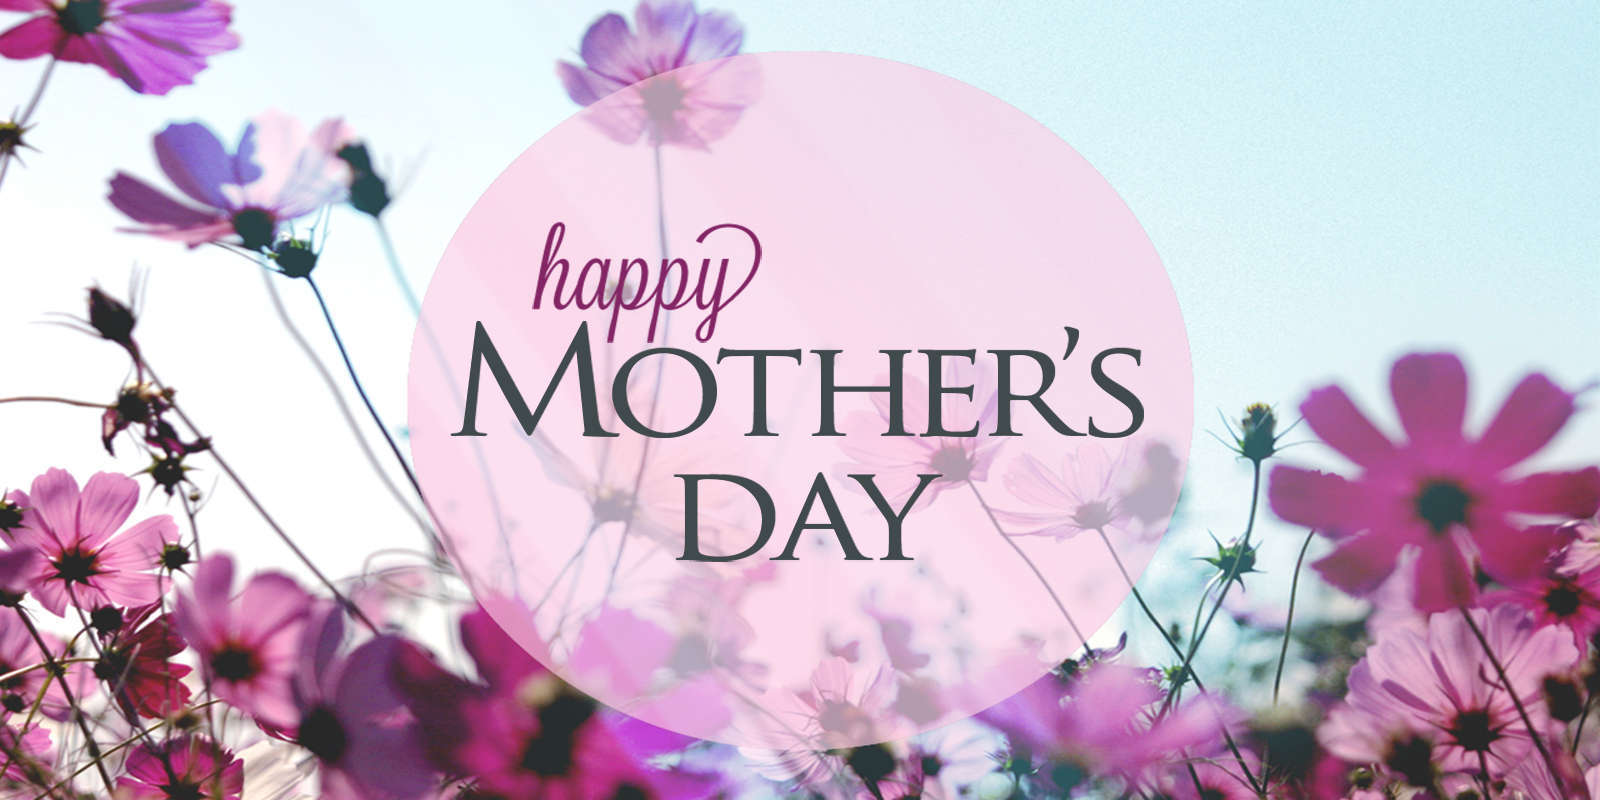 Happy Mother's Day Photos, Wallpaper